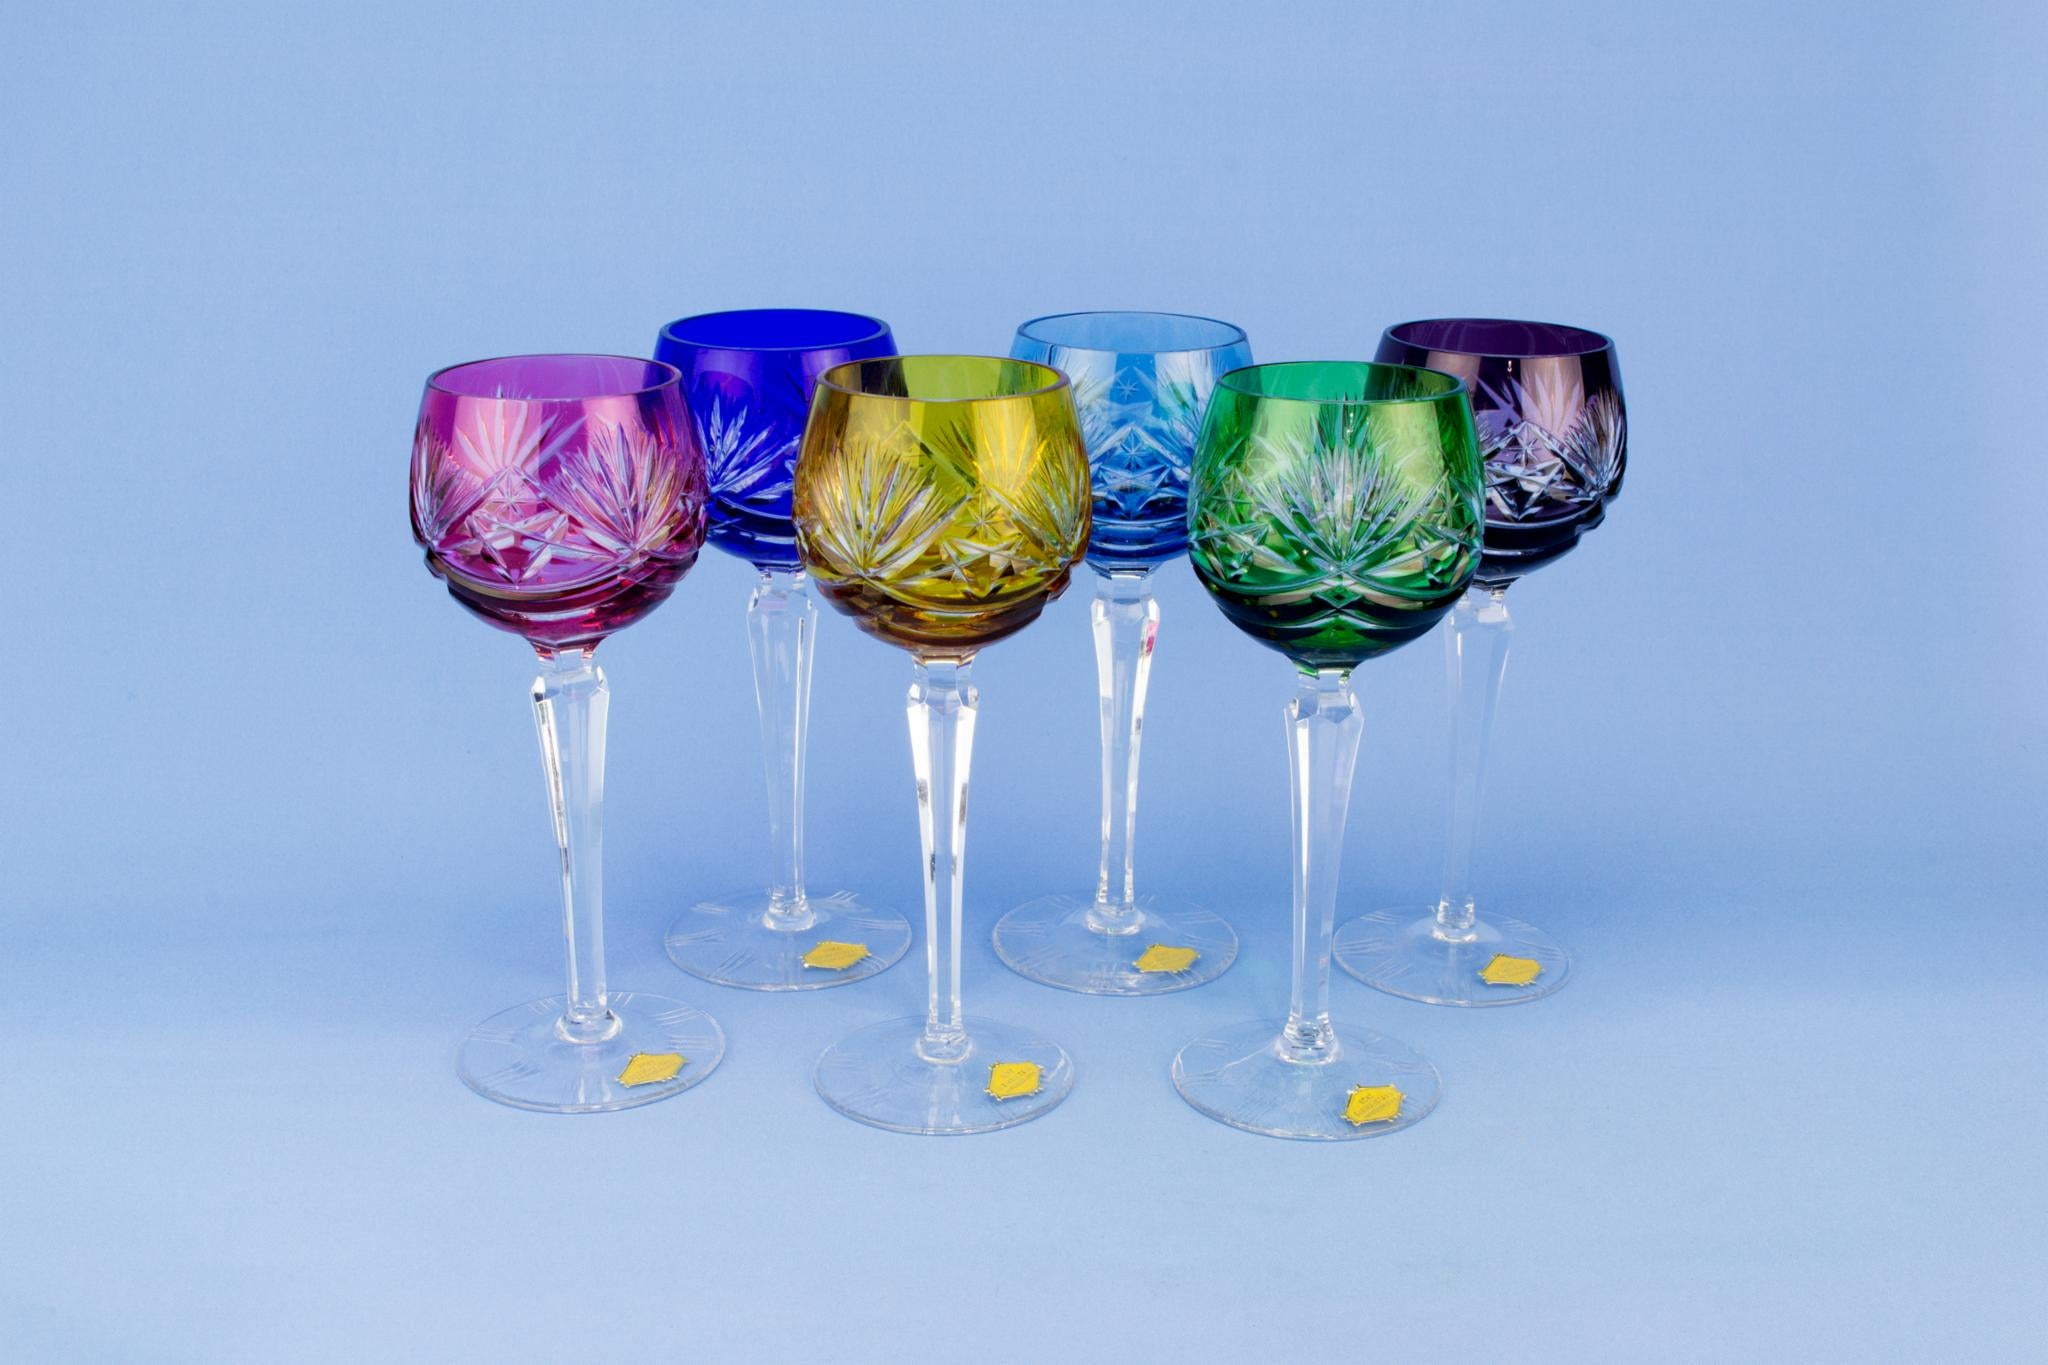 6 Harlequin wine glasses, German circa 1970